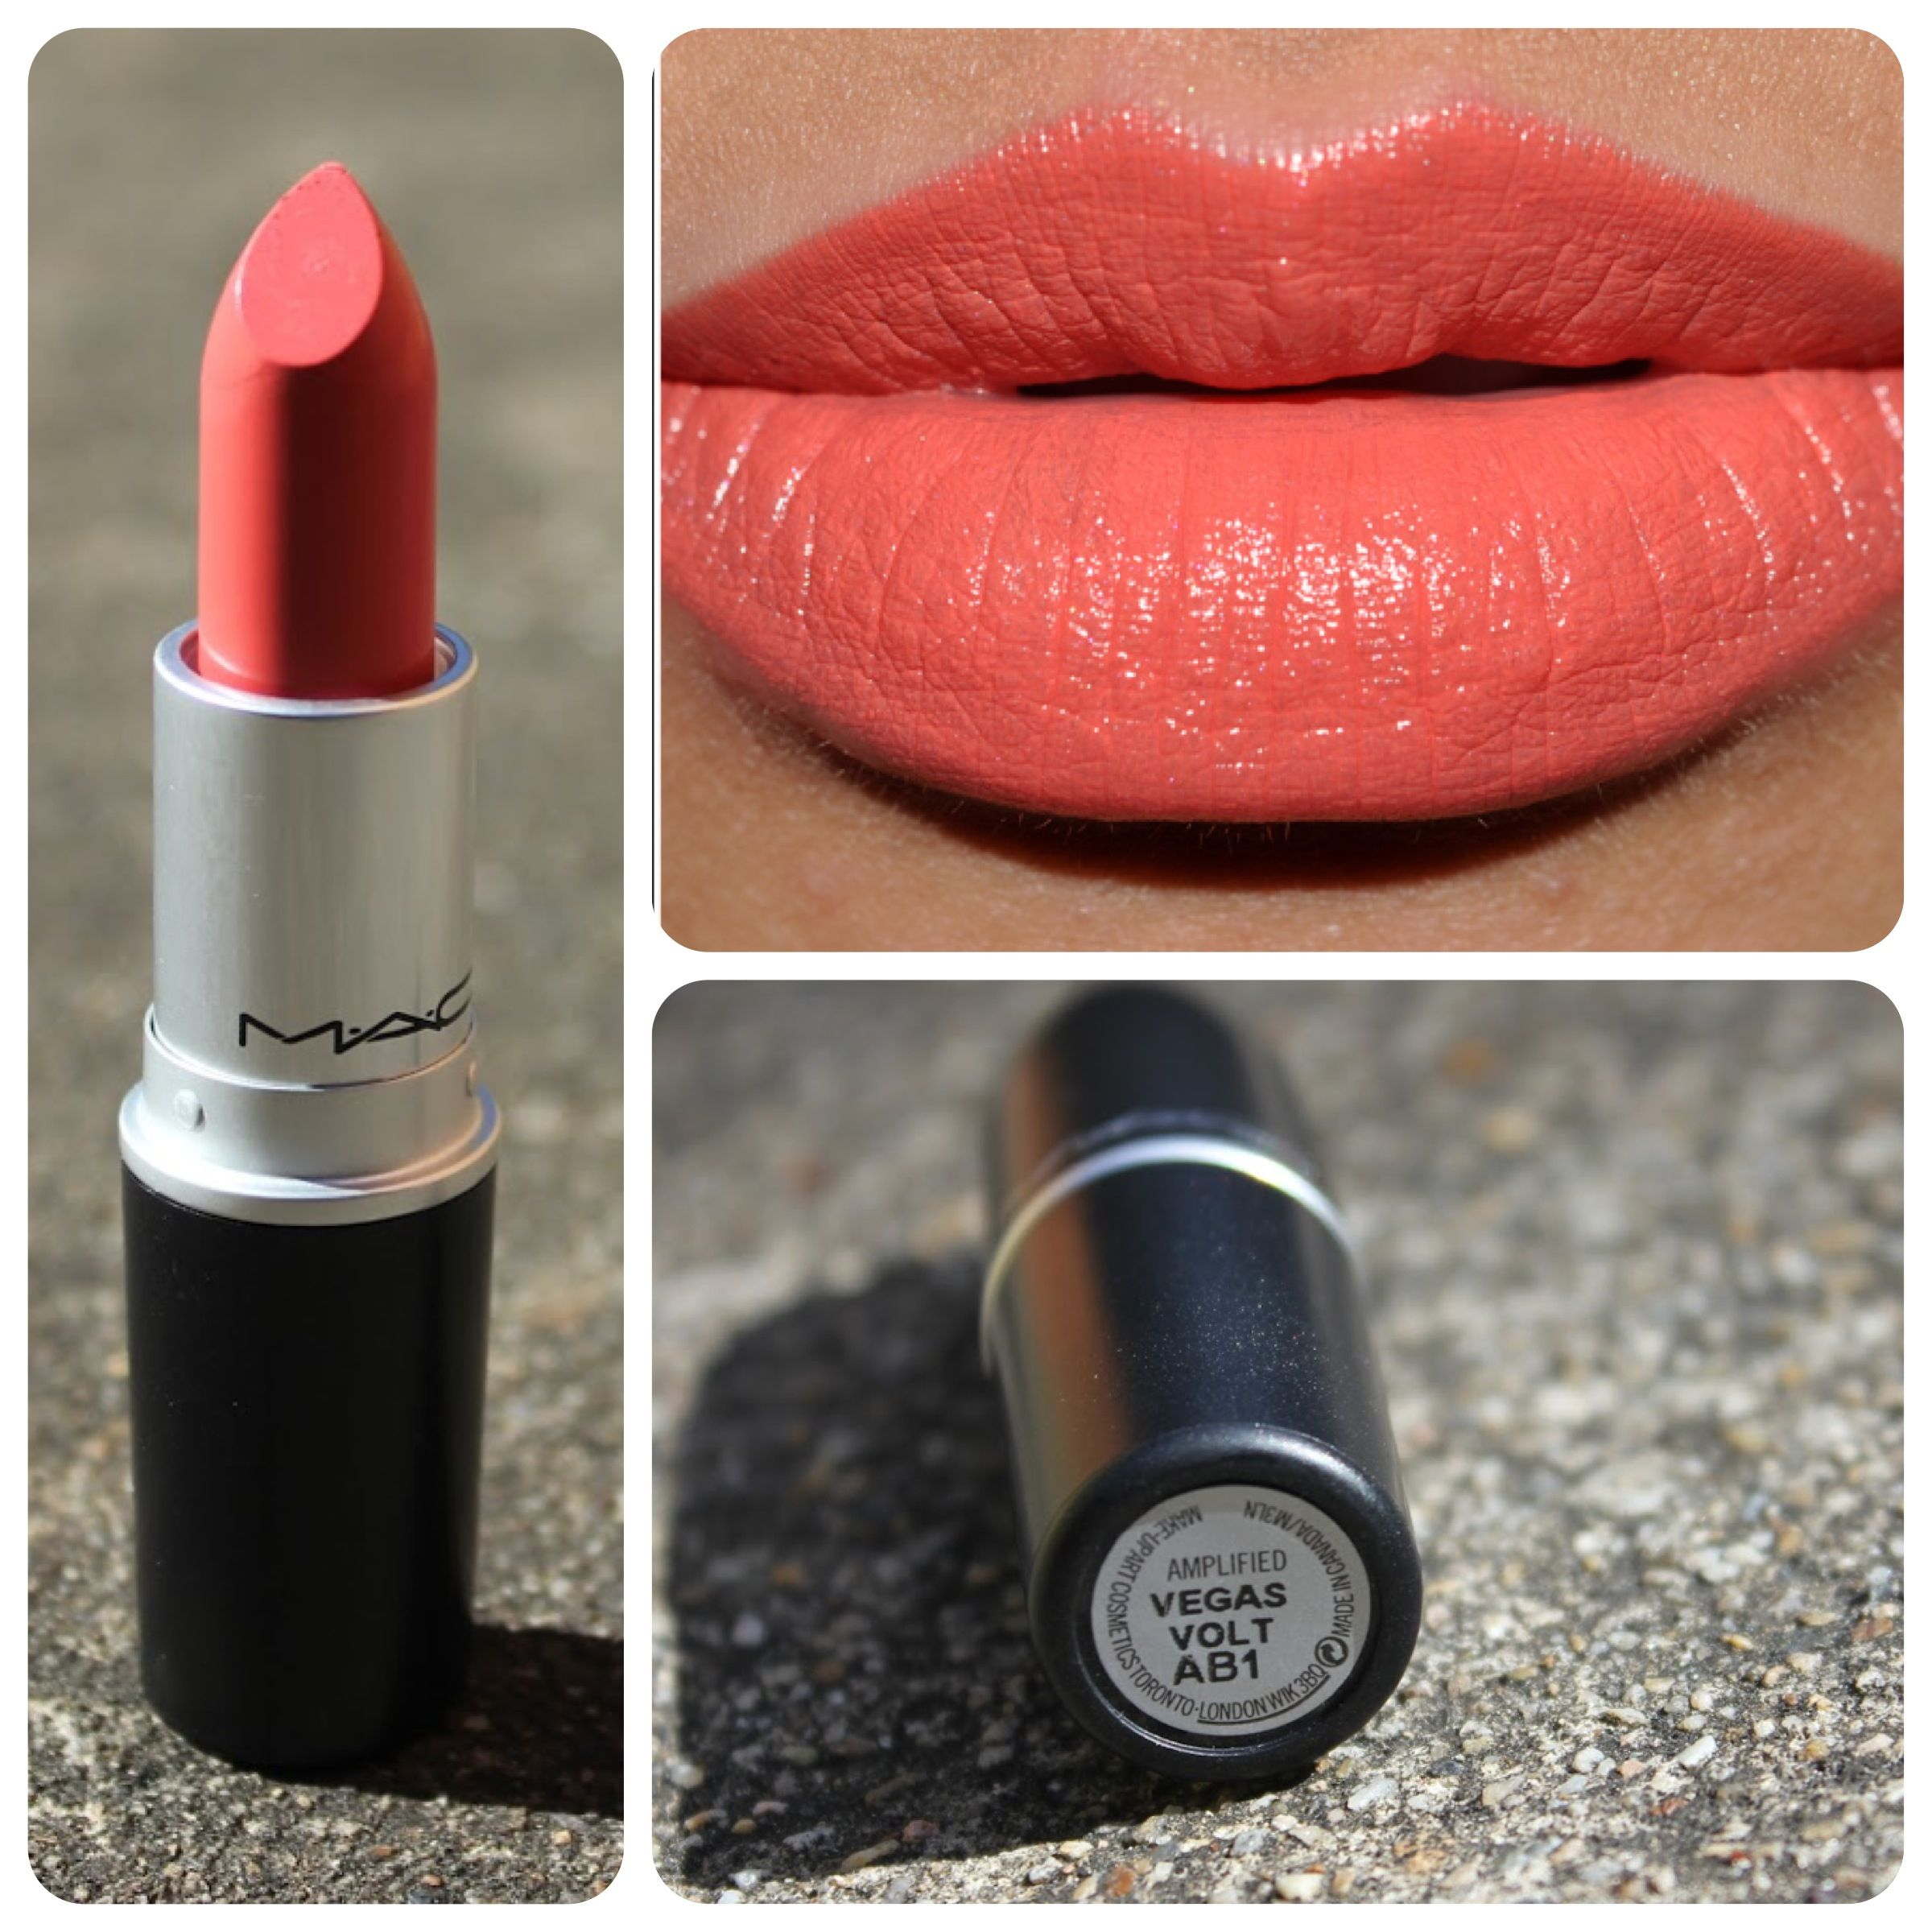 Mac lipstick colors: i want lady danger and vegas volt (With